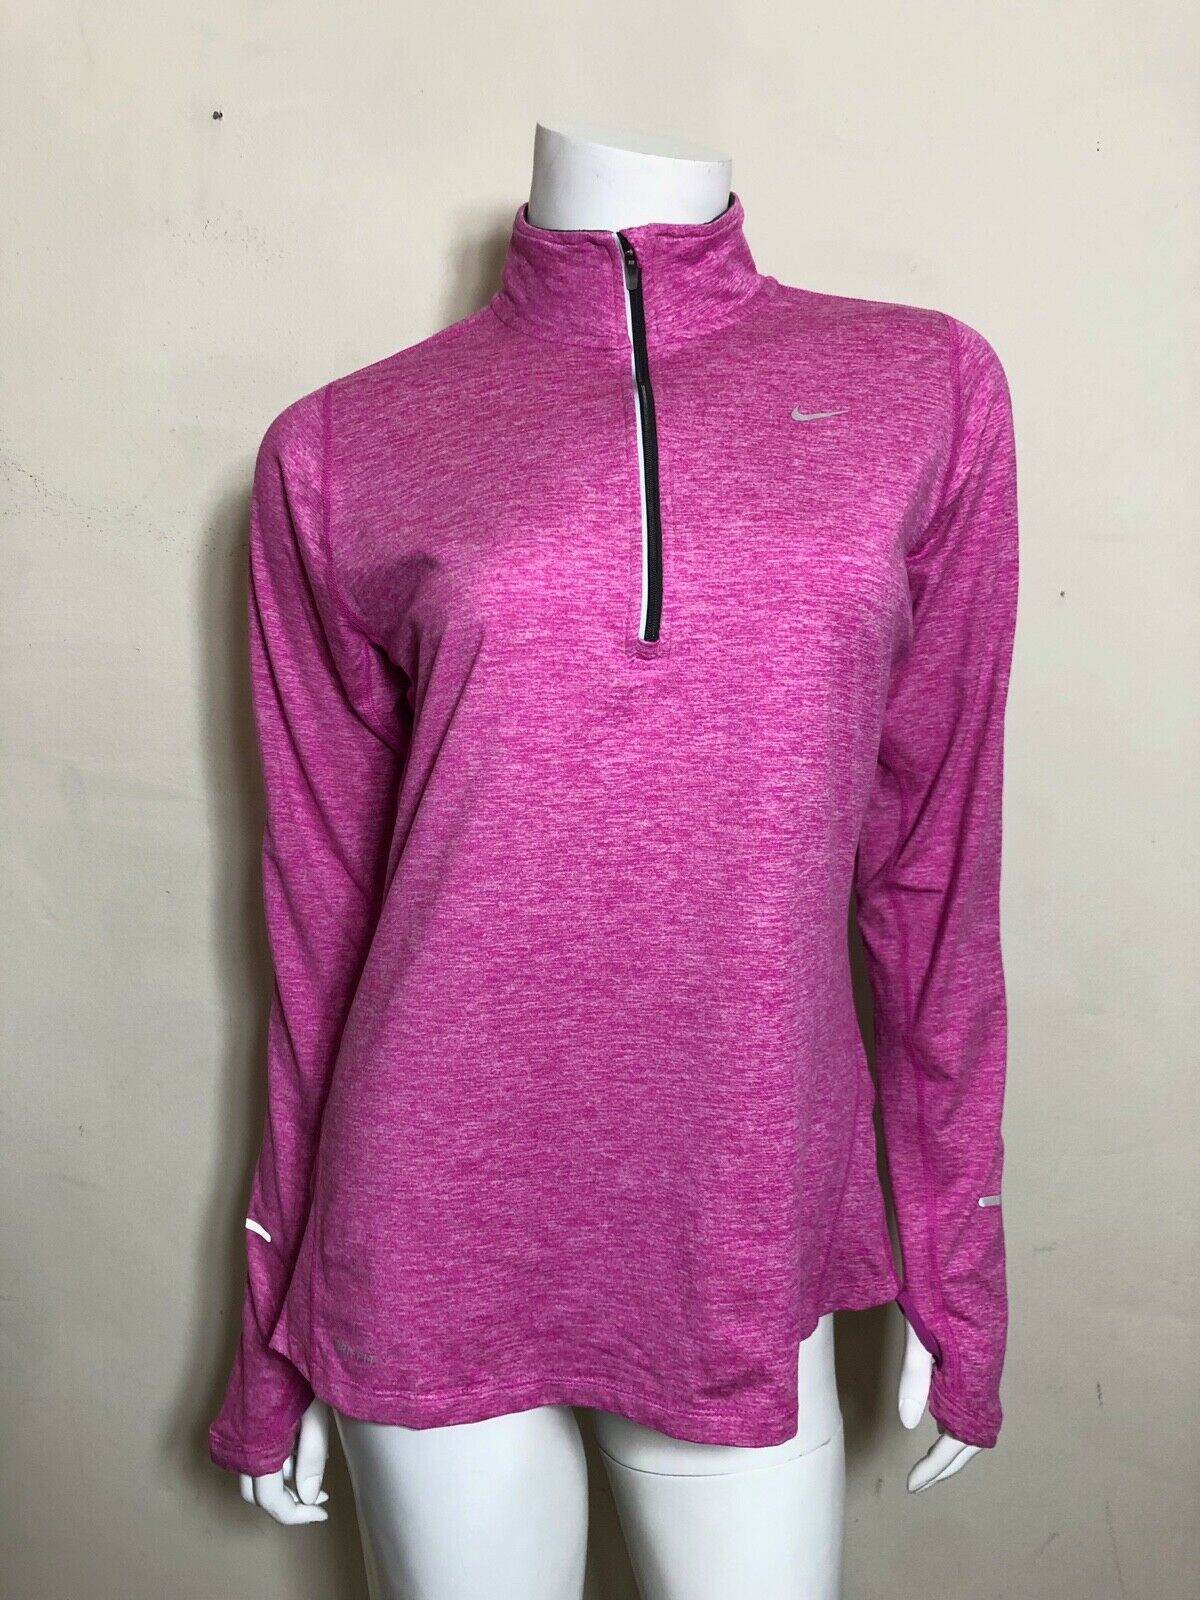 NIKE Dri-Fit 1 4 Zip Top In Heathered Pink Size M